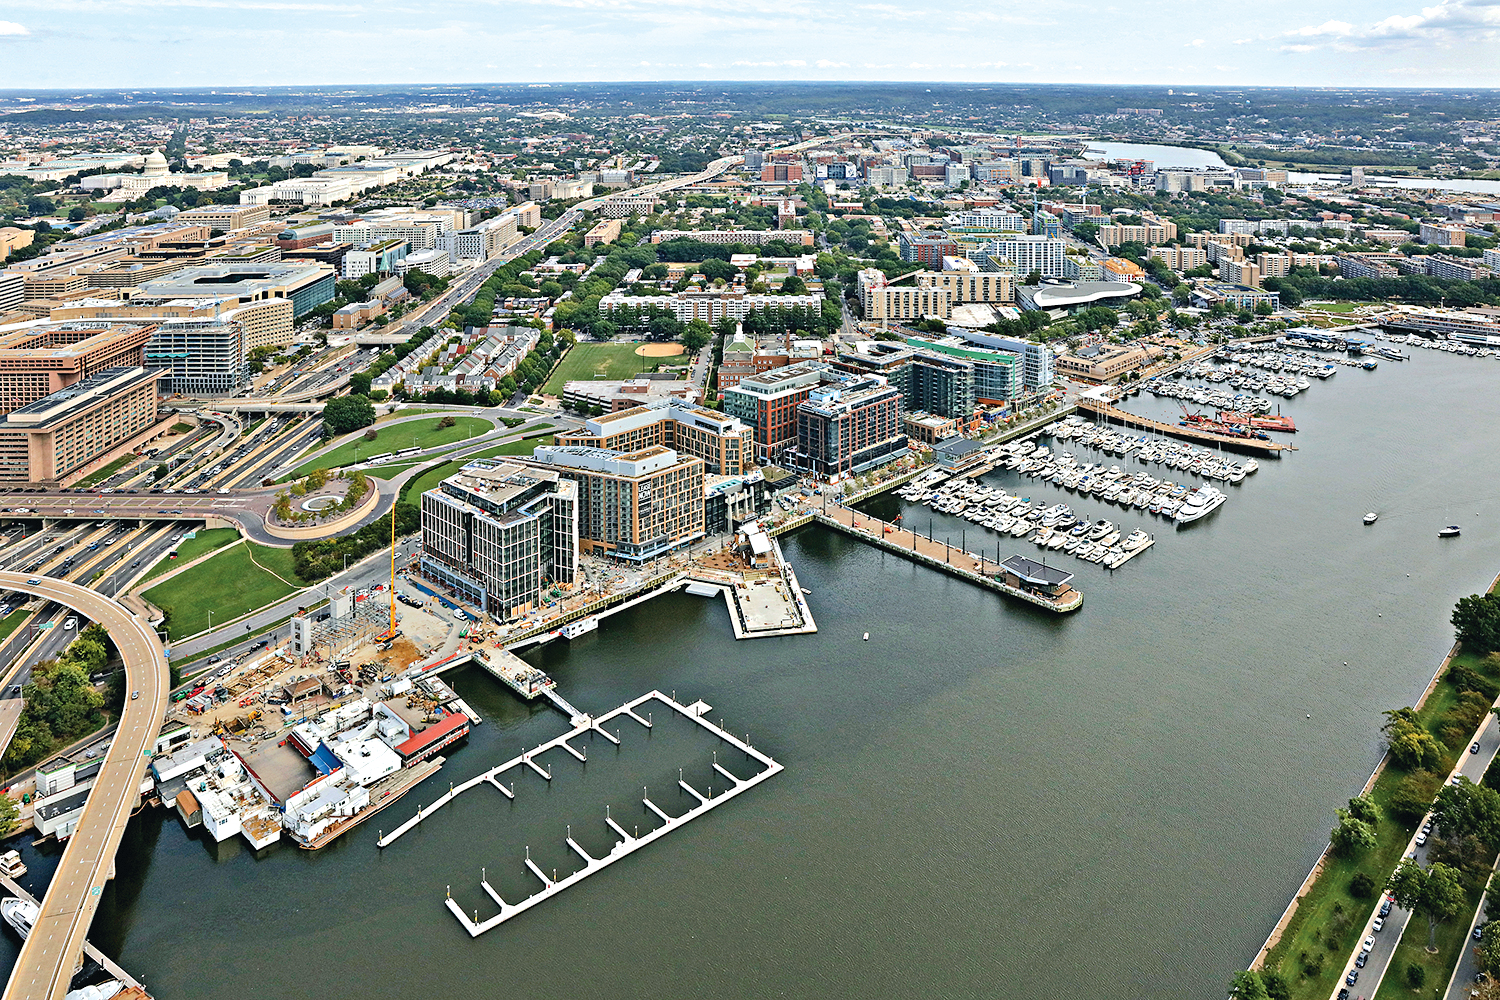 Rendering of Waterfront Courtesy of The Wharf.